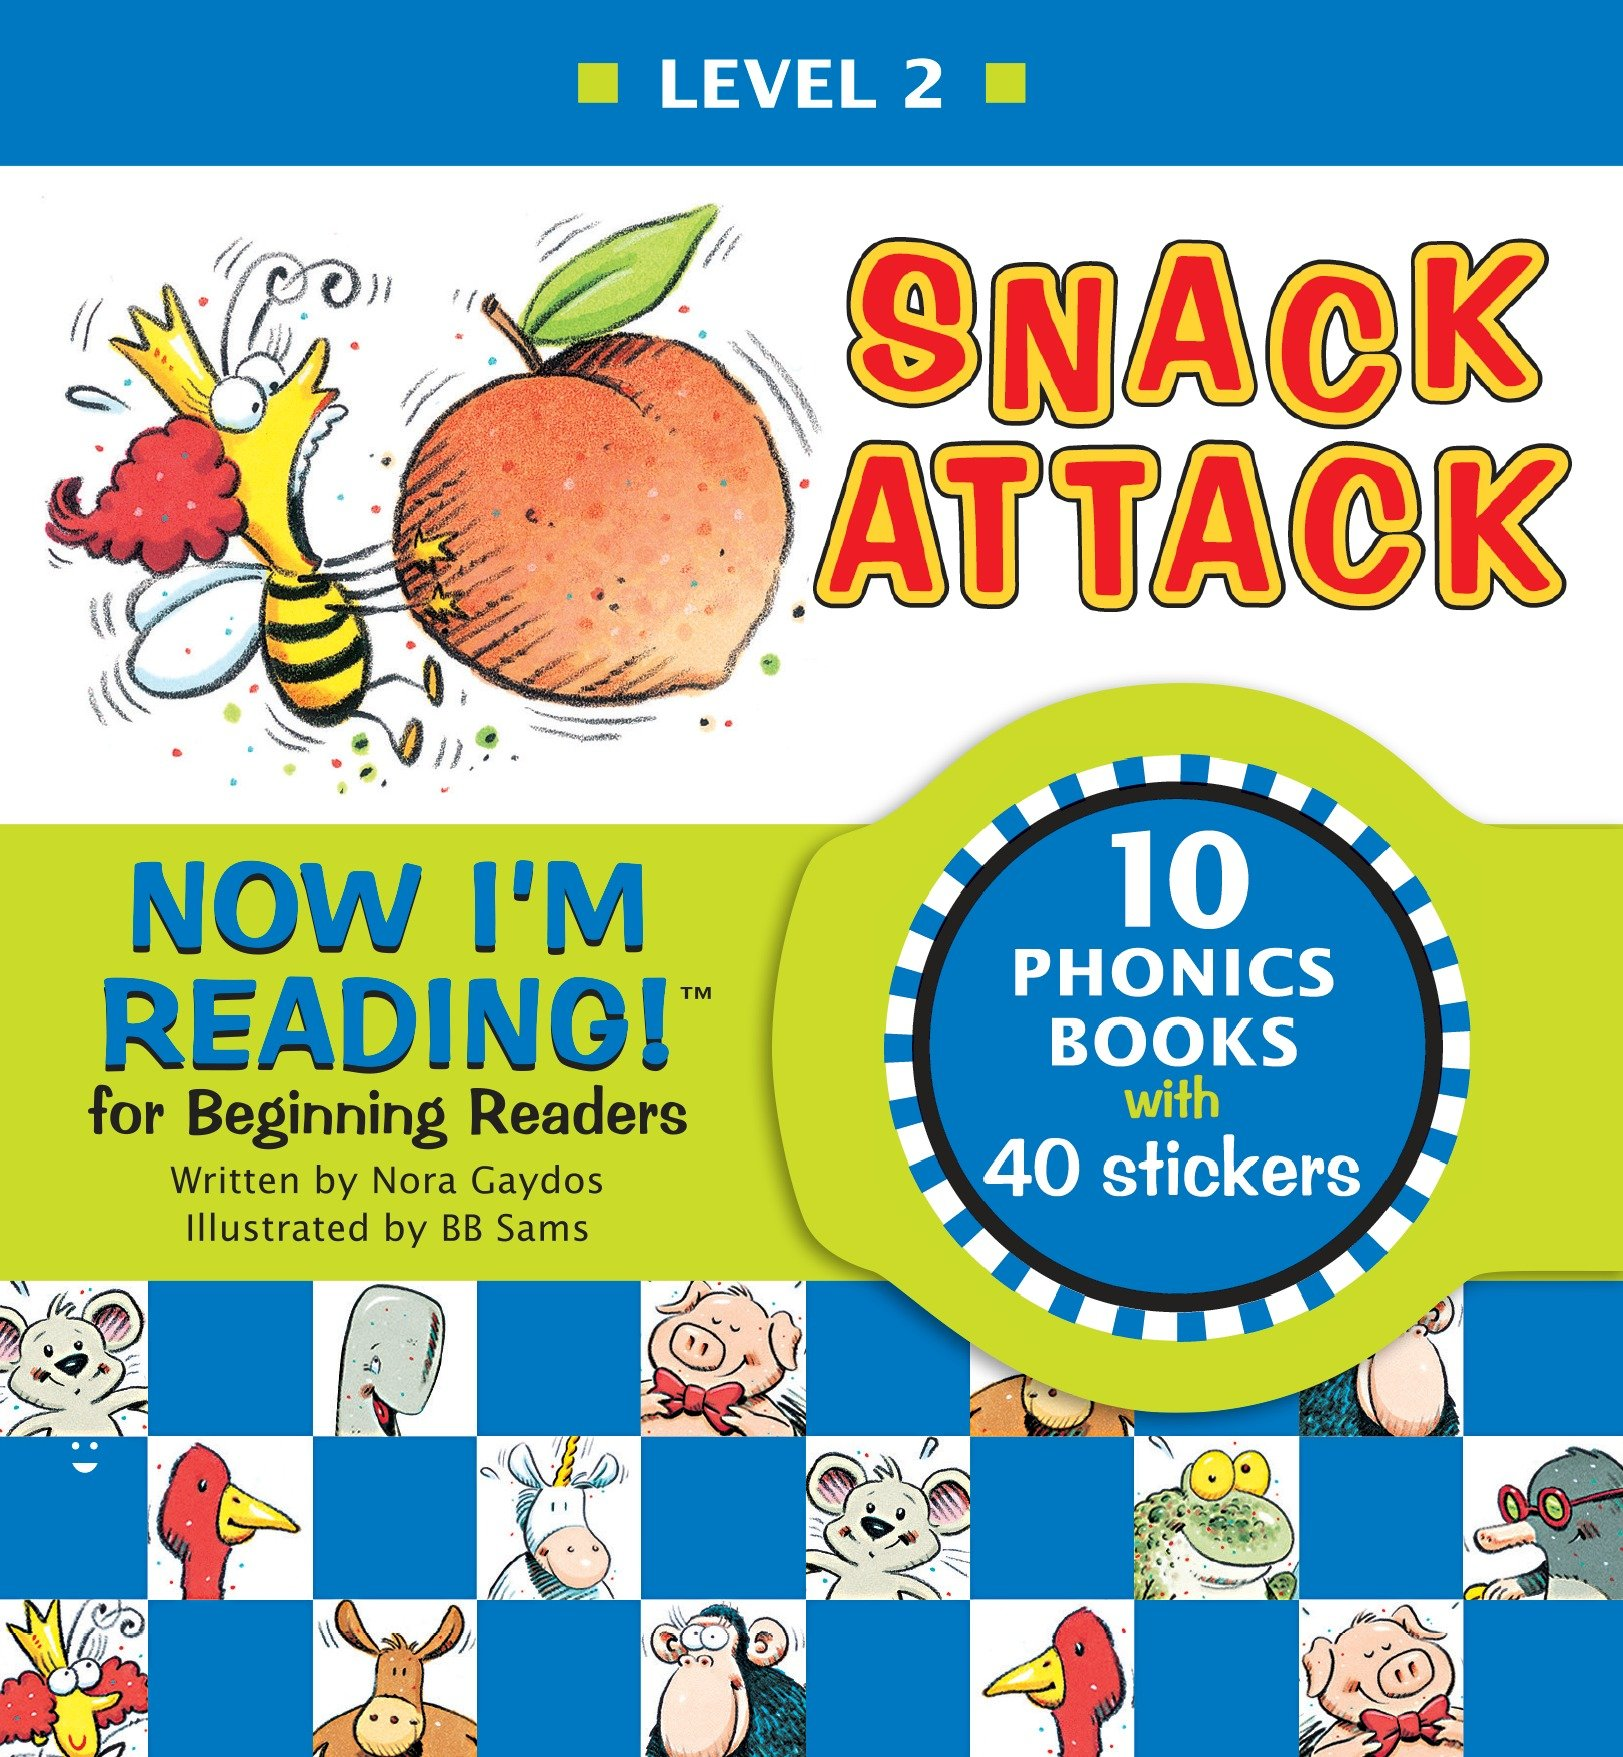 Snack Attack (Hardcover)